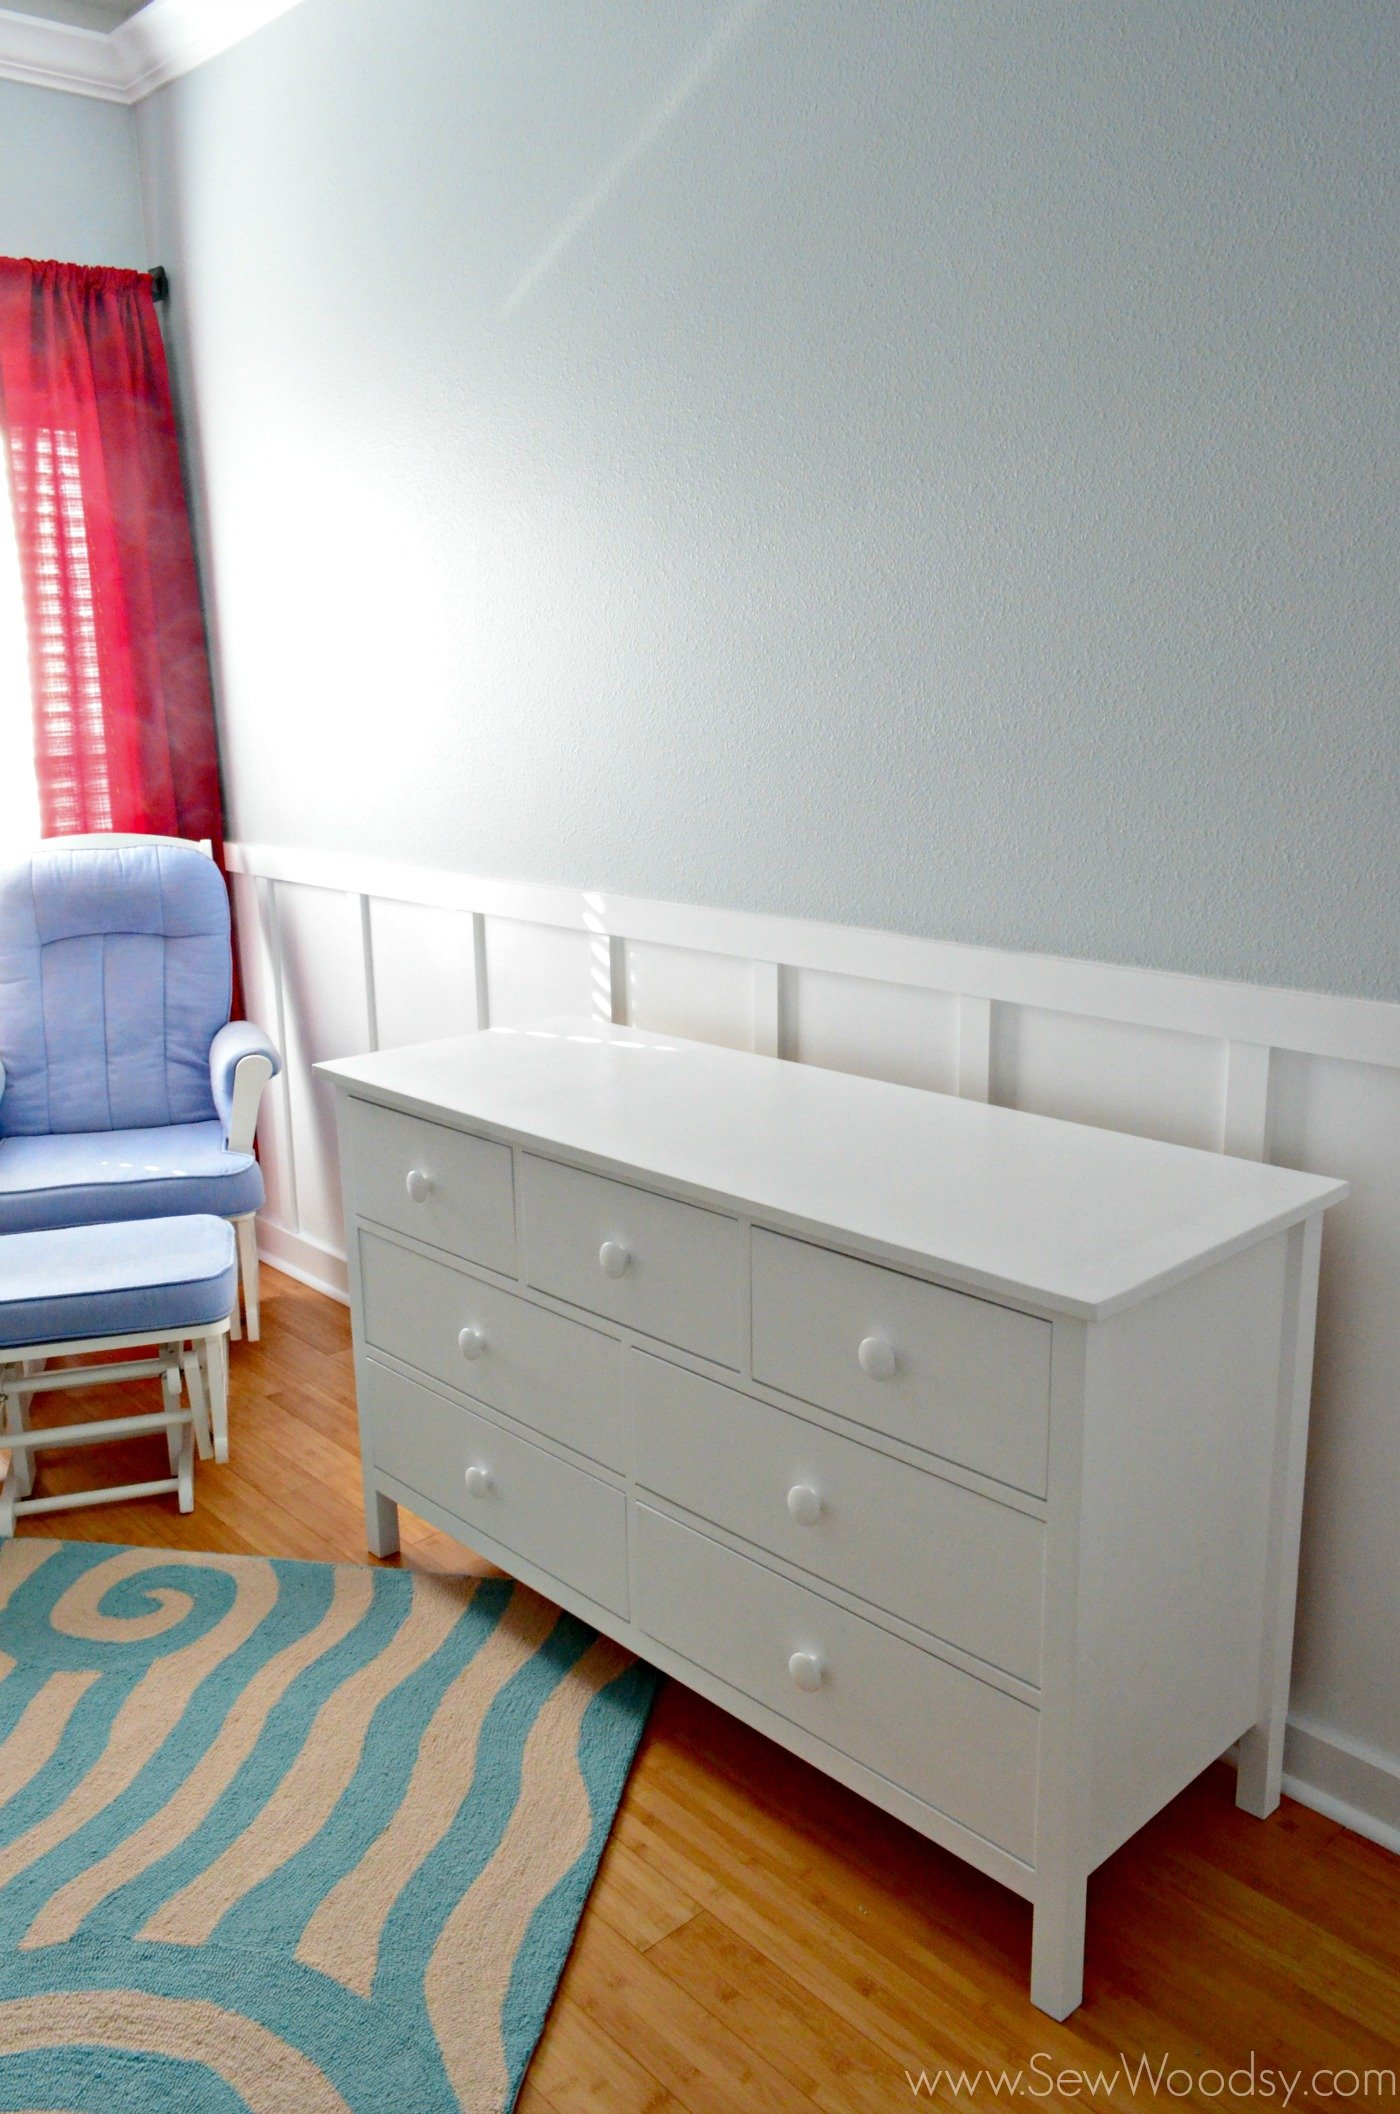 How to make dresser drawers - I M In Love With How The Dresser Turned Out And Also In Love With The Rug In The Nursery It S From Lamps Plus And Its Called Resort Yala Blue Area Rug